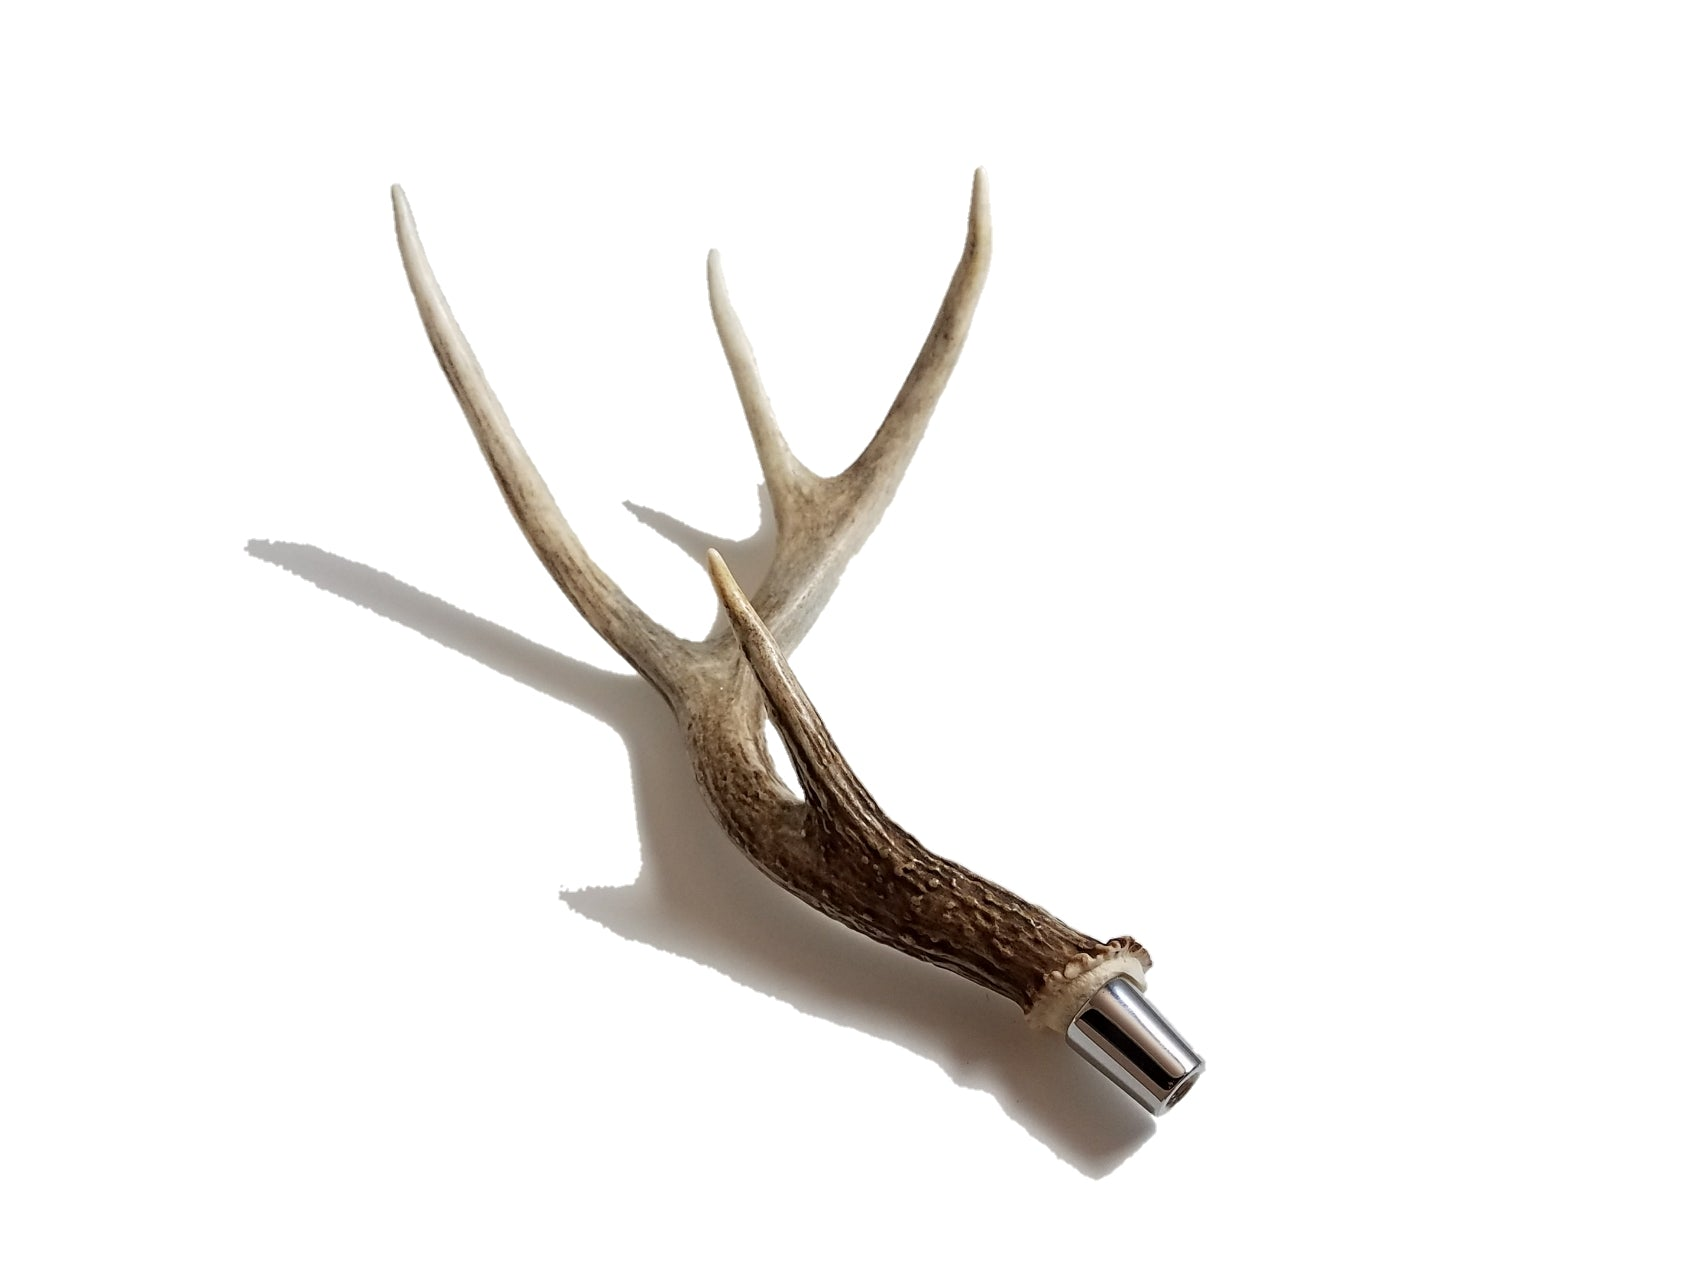 Whitetail antler beer tap handle (left) by Antler Artisans